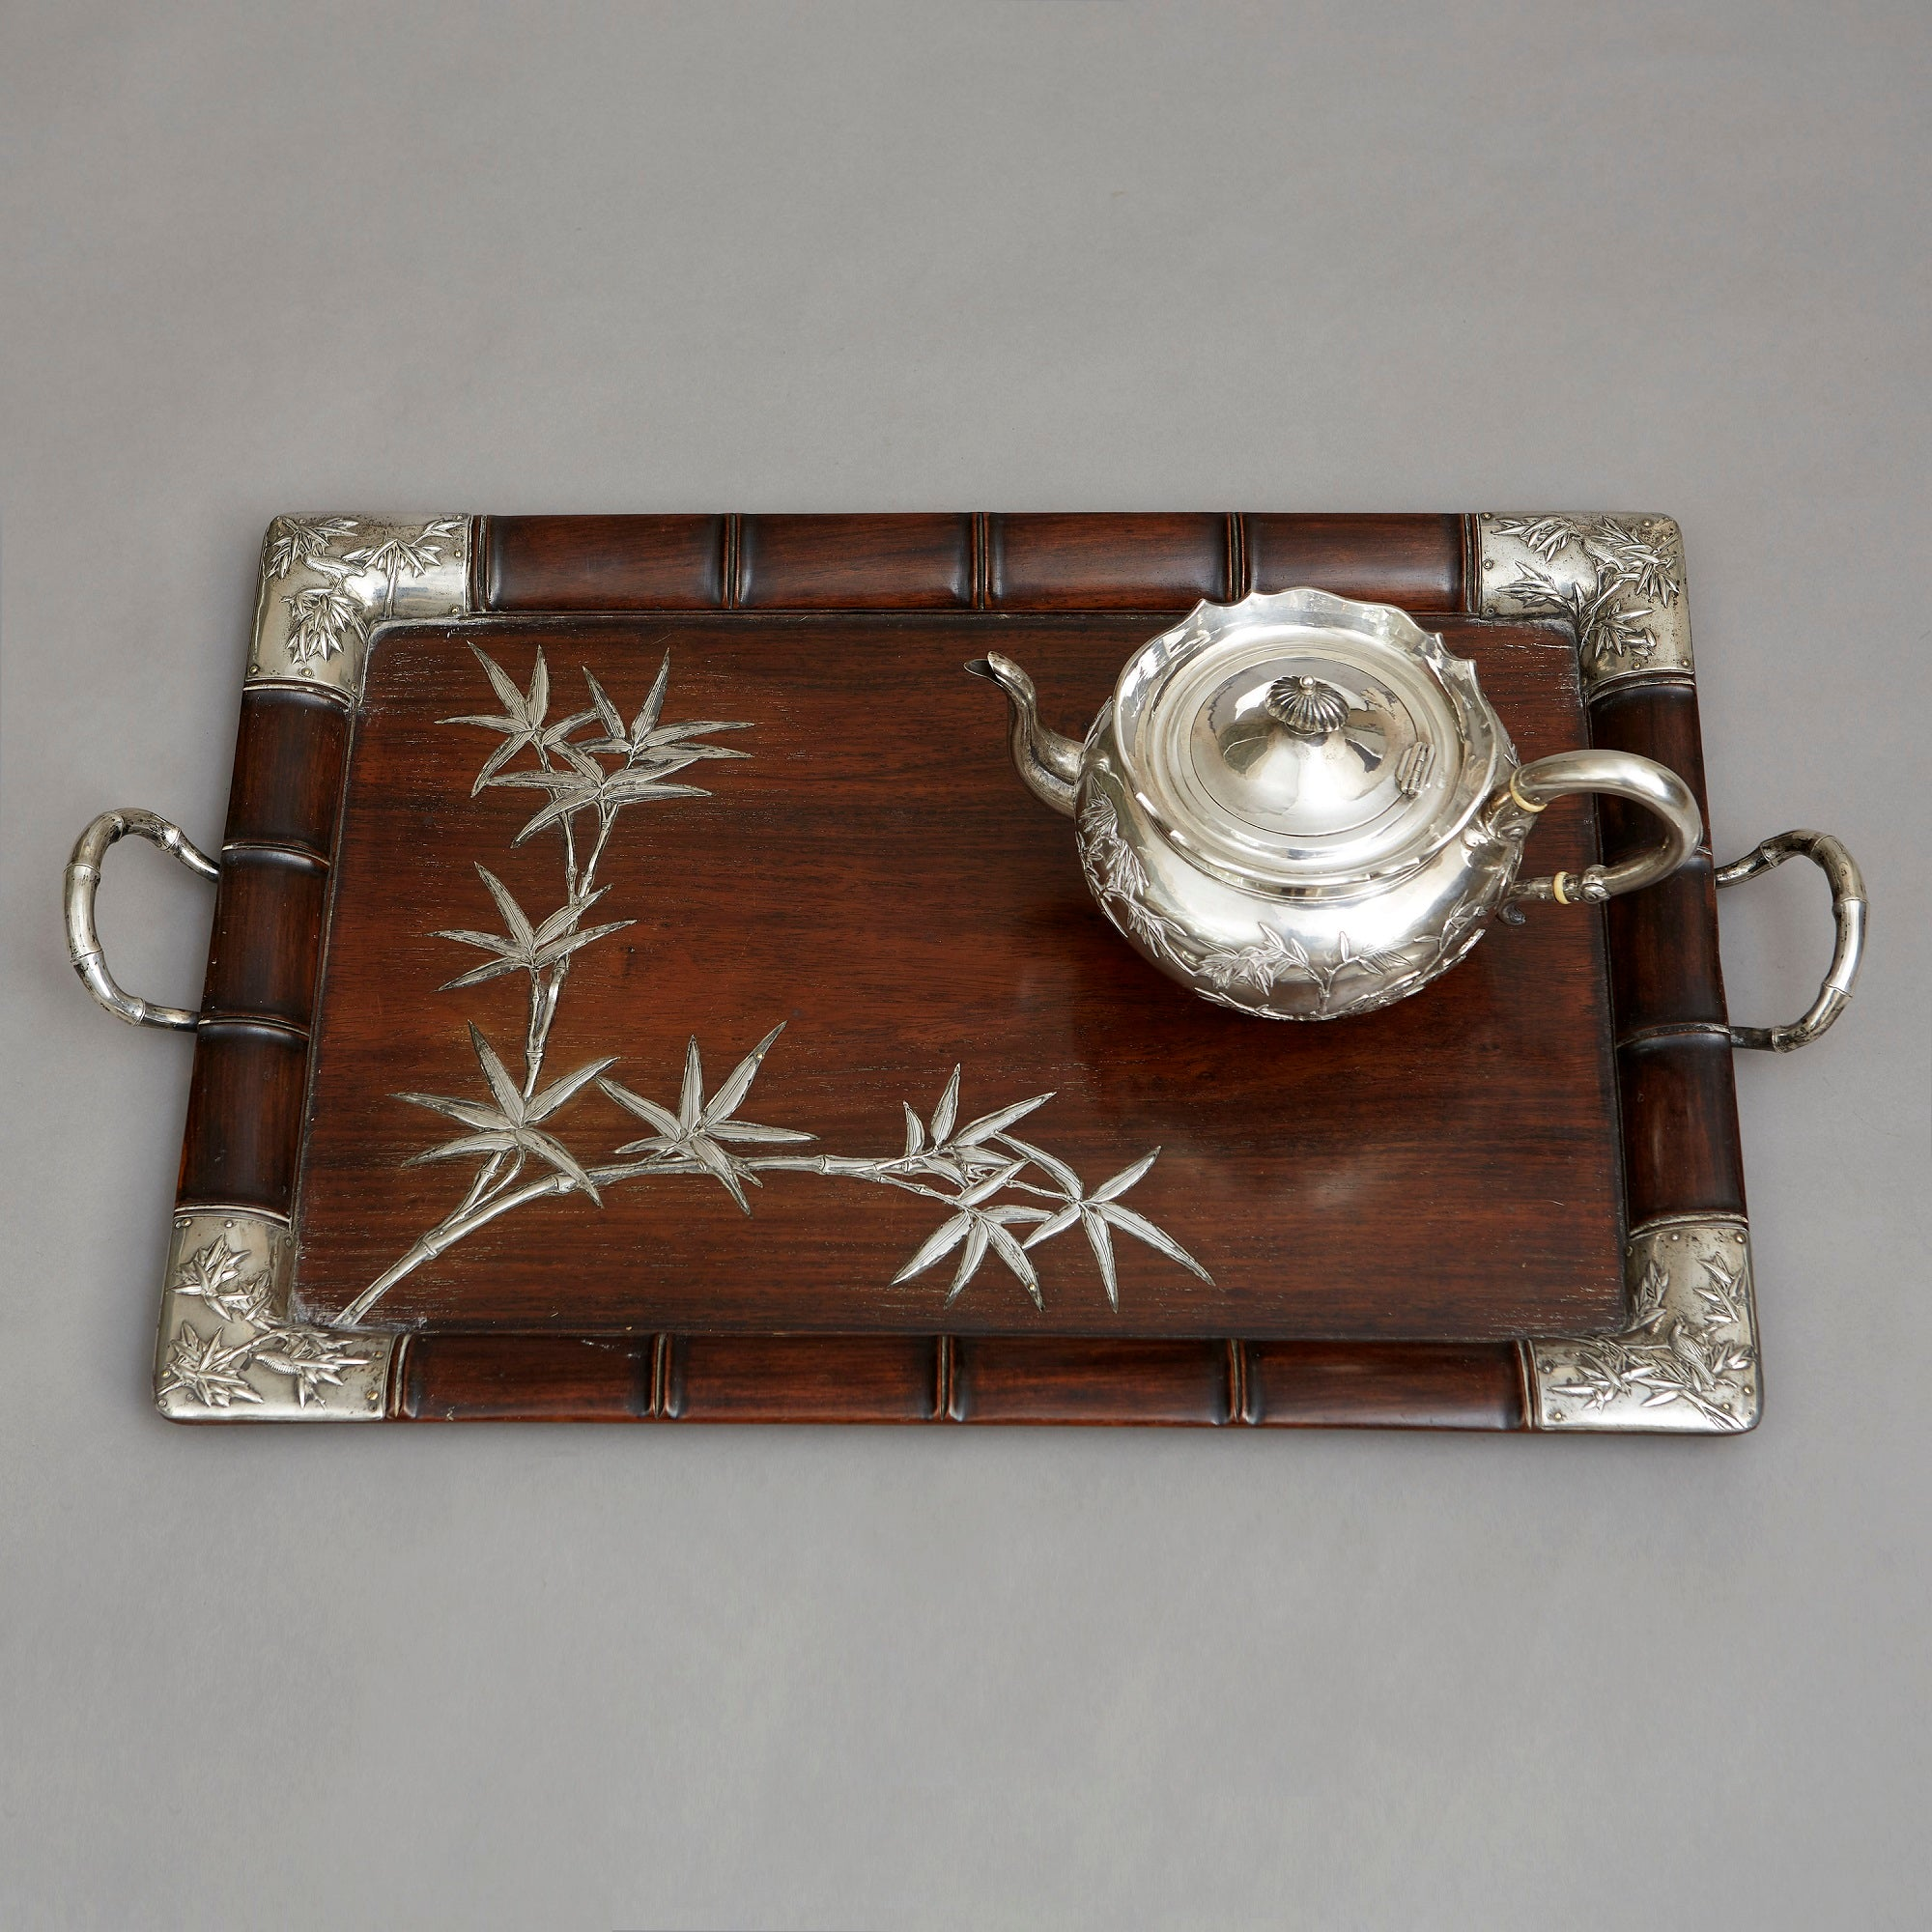 Chinese Export Tea Service including a Magnificent Matching Tray